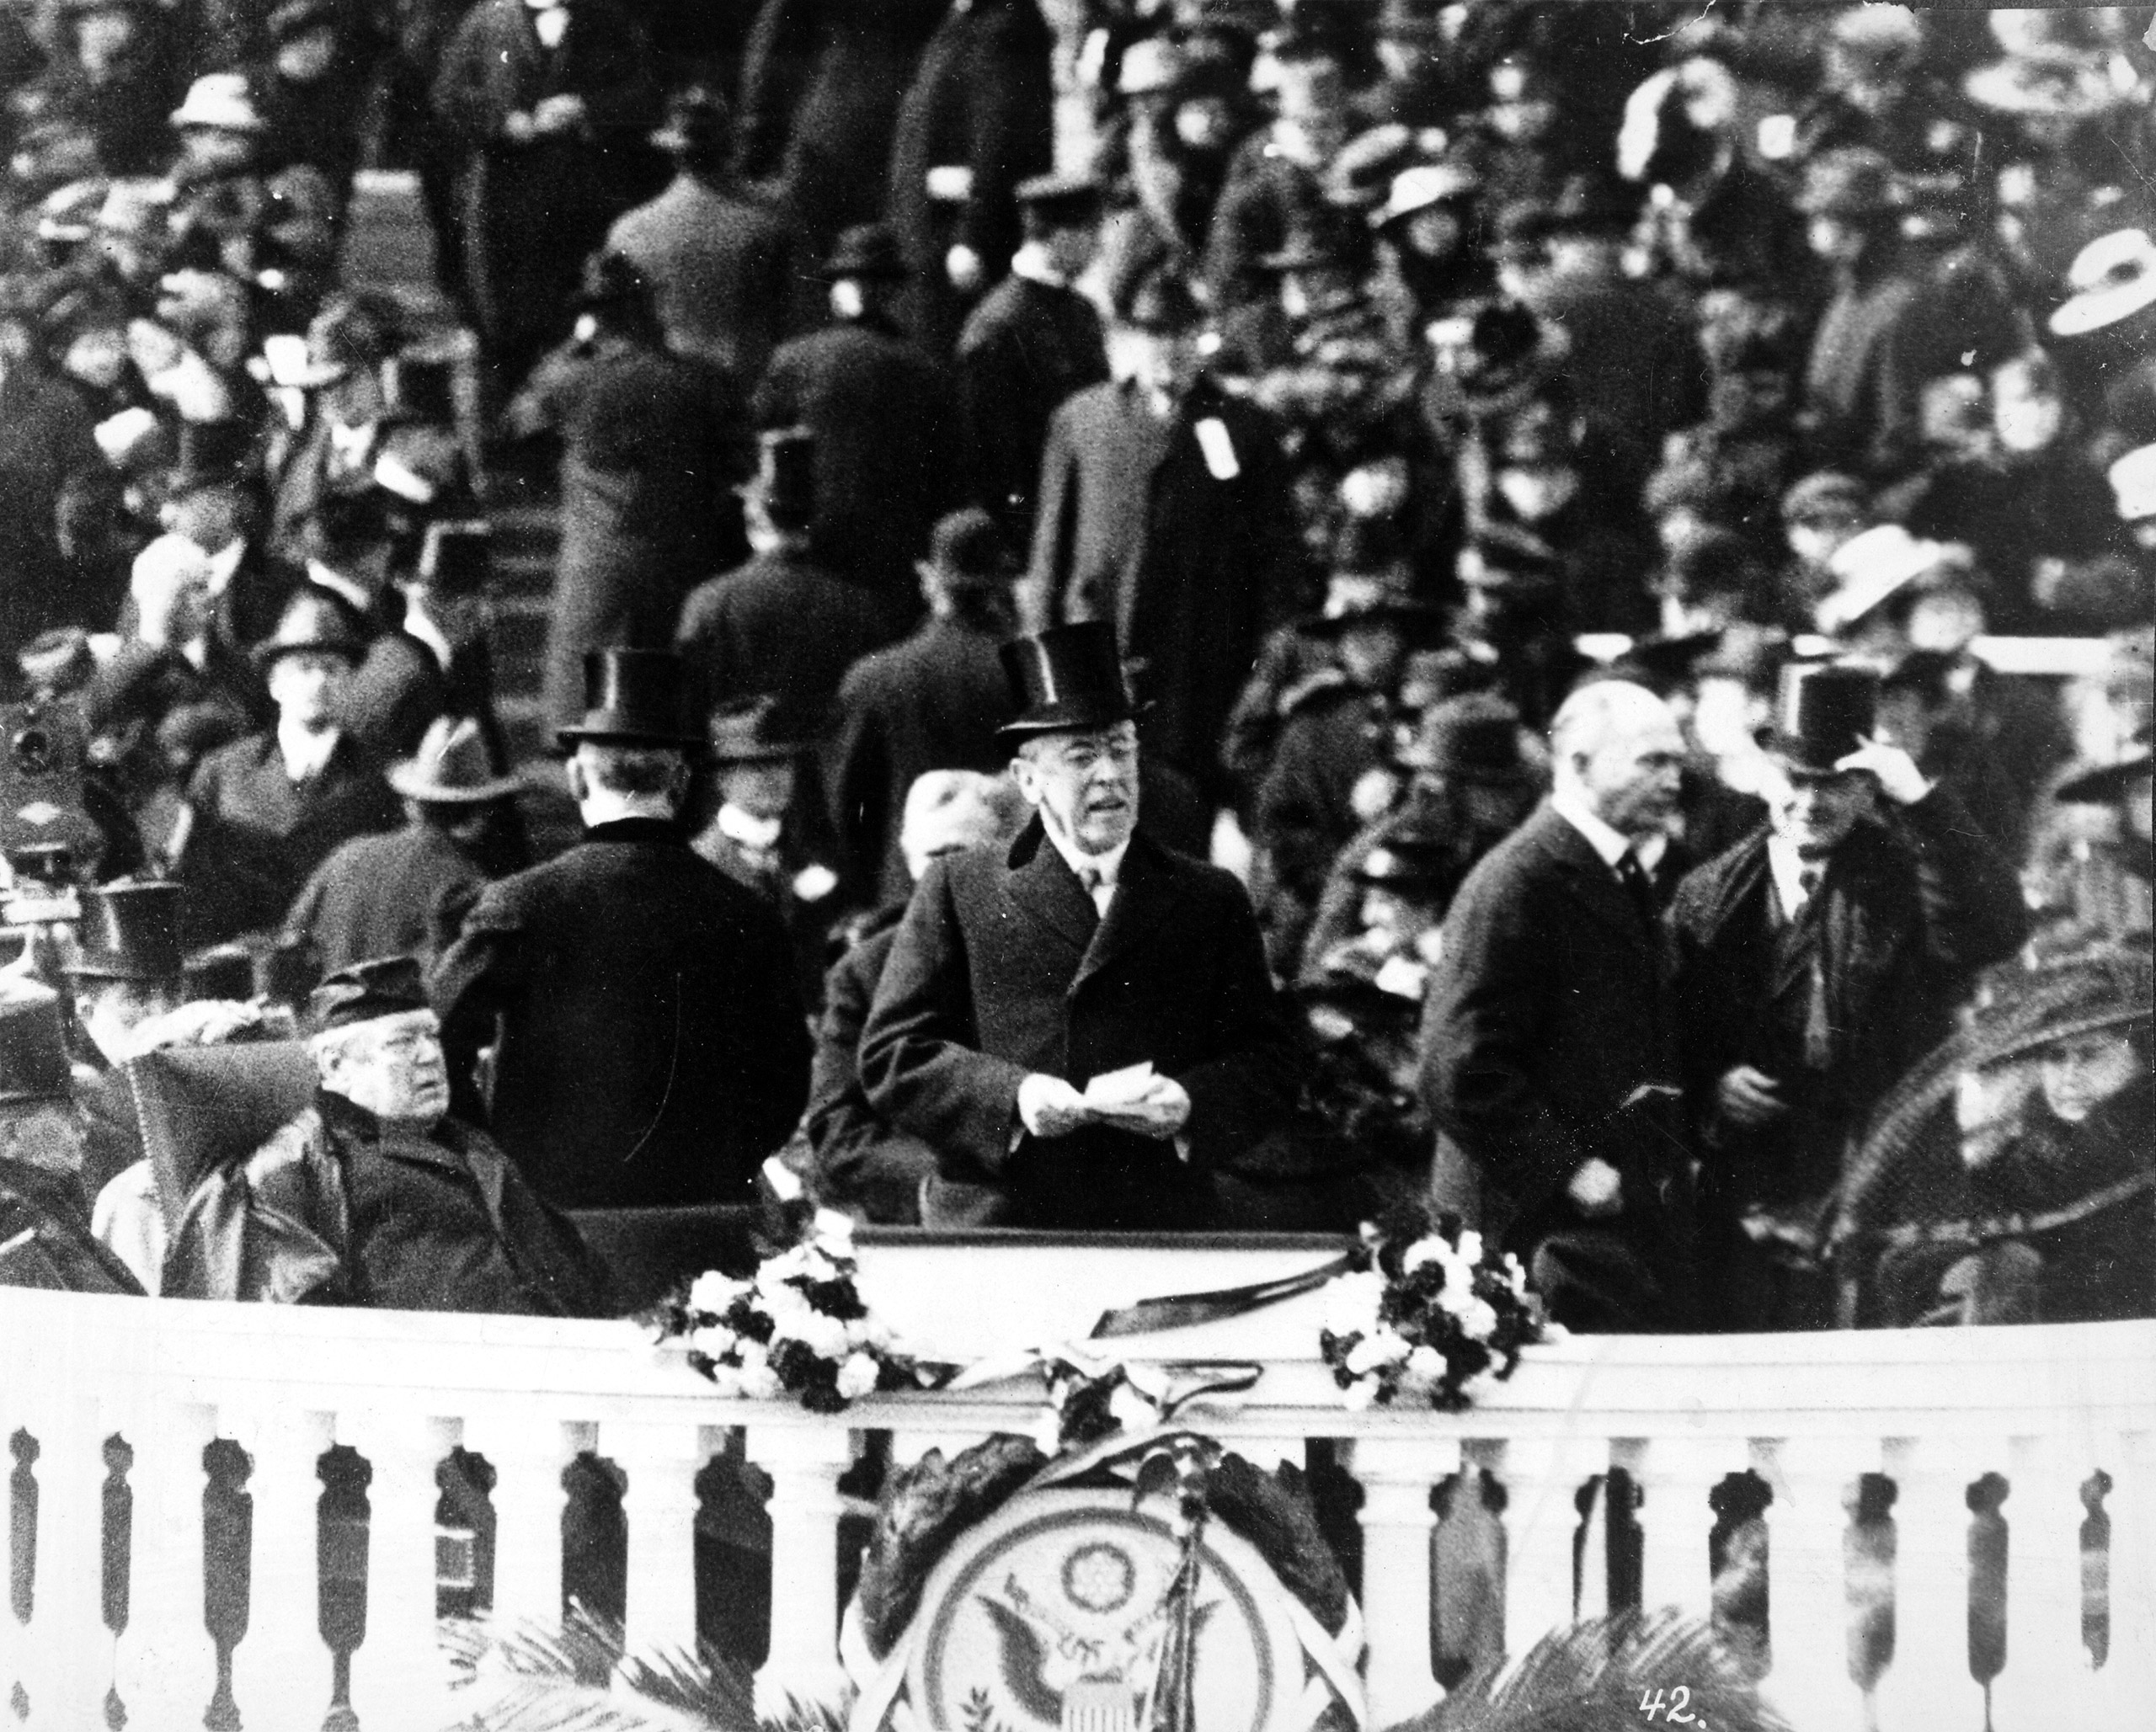 President Woodrow Wilson, with top hat and speech in hand, delivering his inaugural address, March 5, 1917.